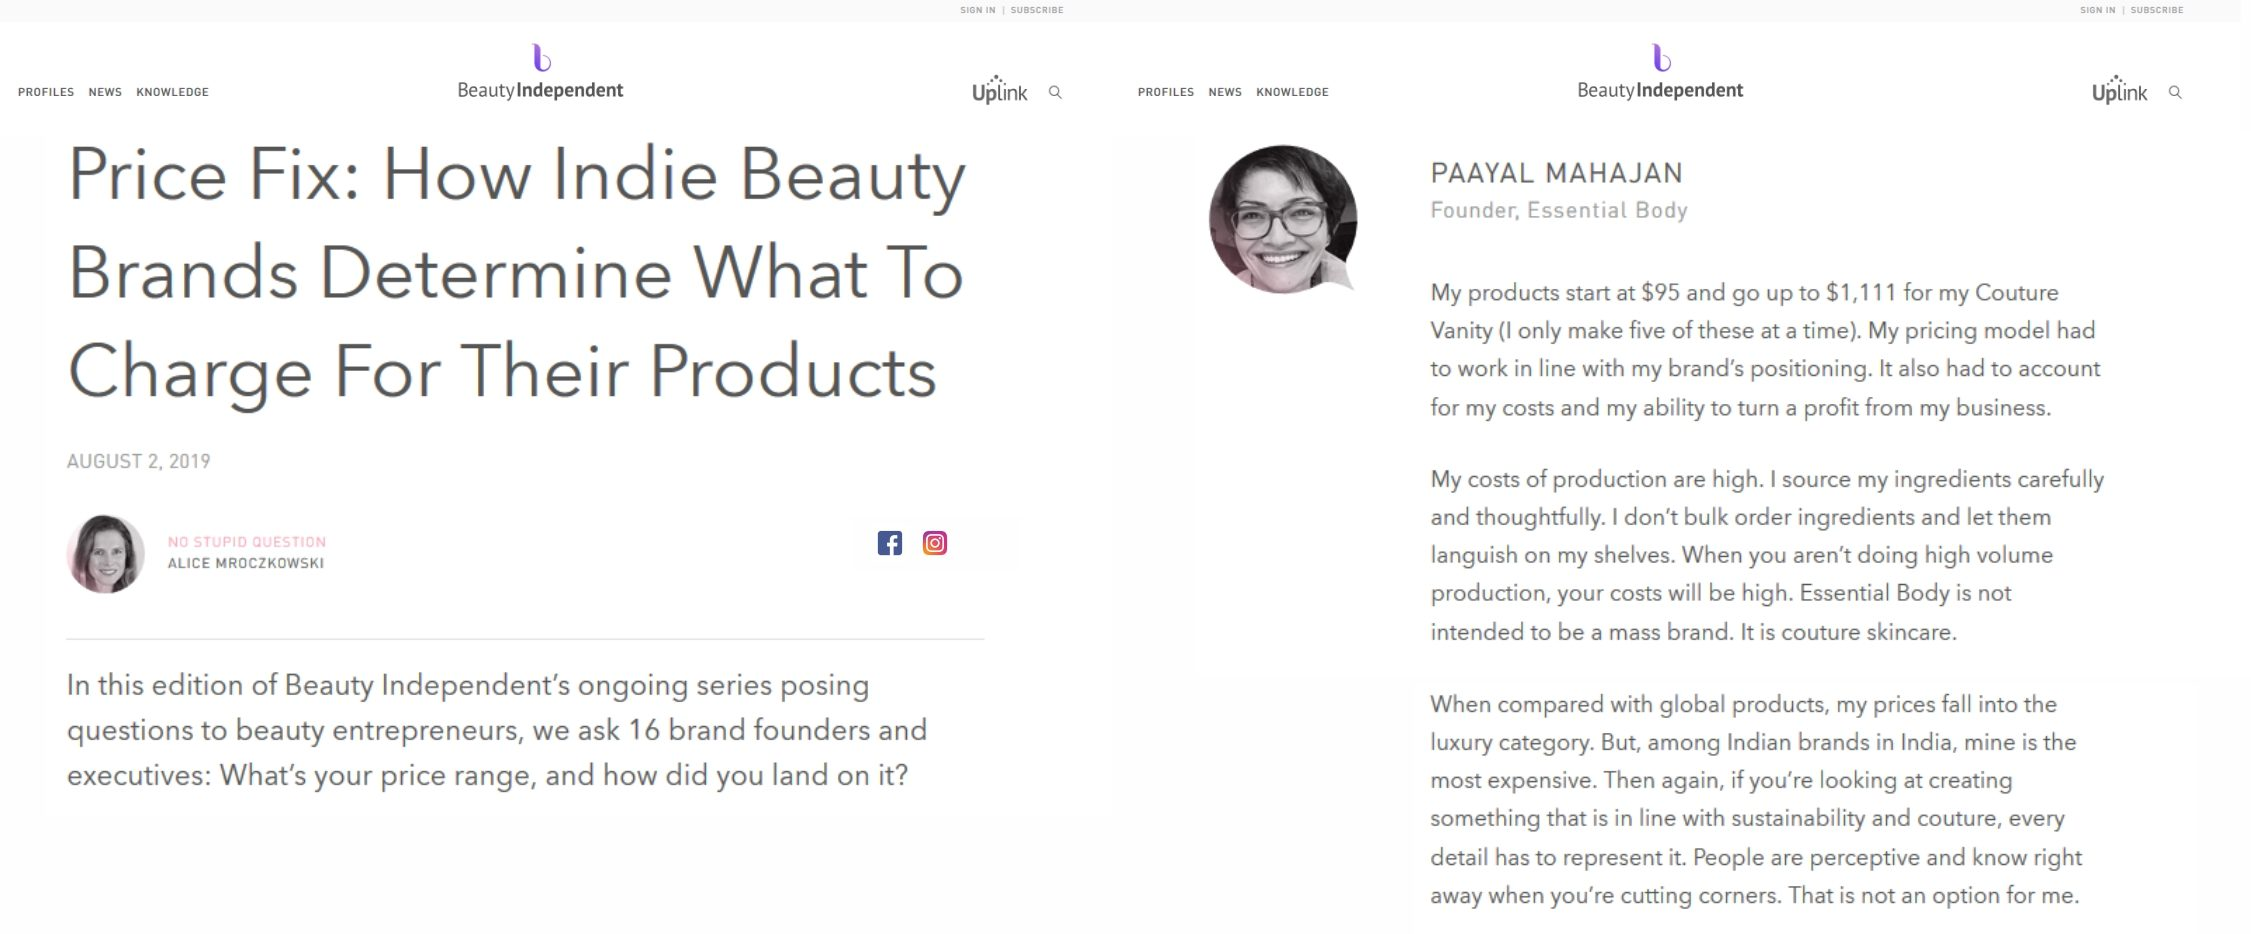 BeautyIndependent - August 2, 2019